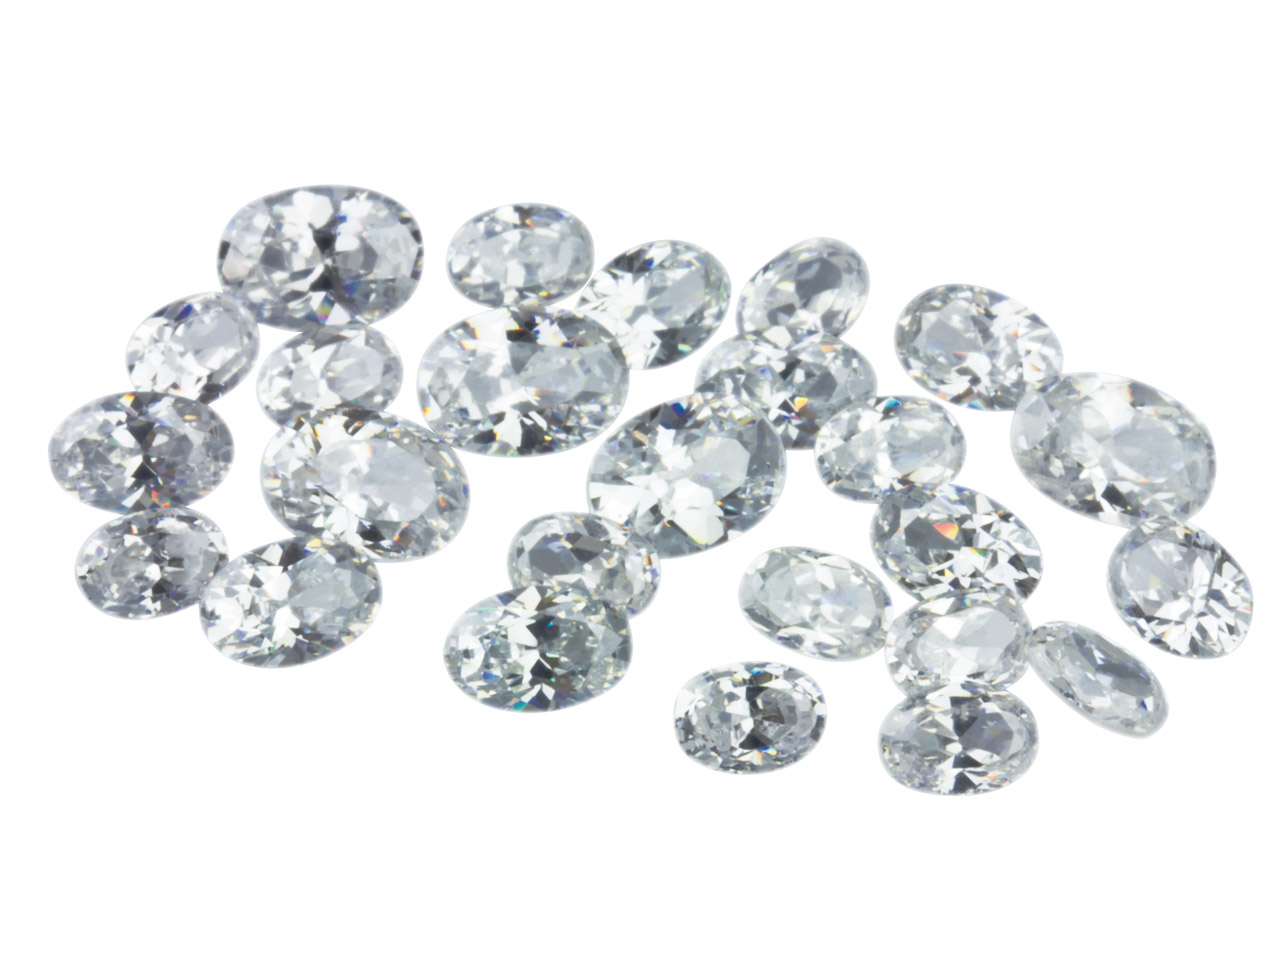 White Cz, Oval Mixed Sizes 5,6,     7mm, Pack of 25 Pmc Safe, Sizes May Vary Slightly